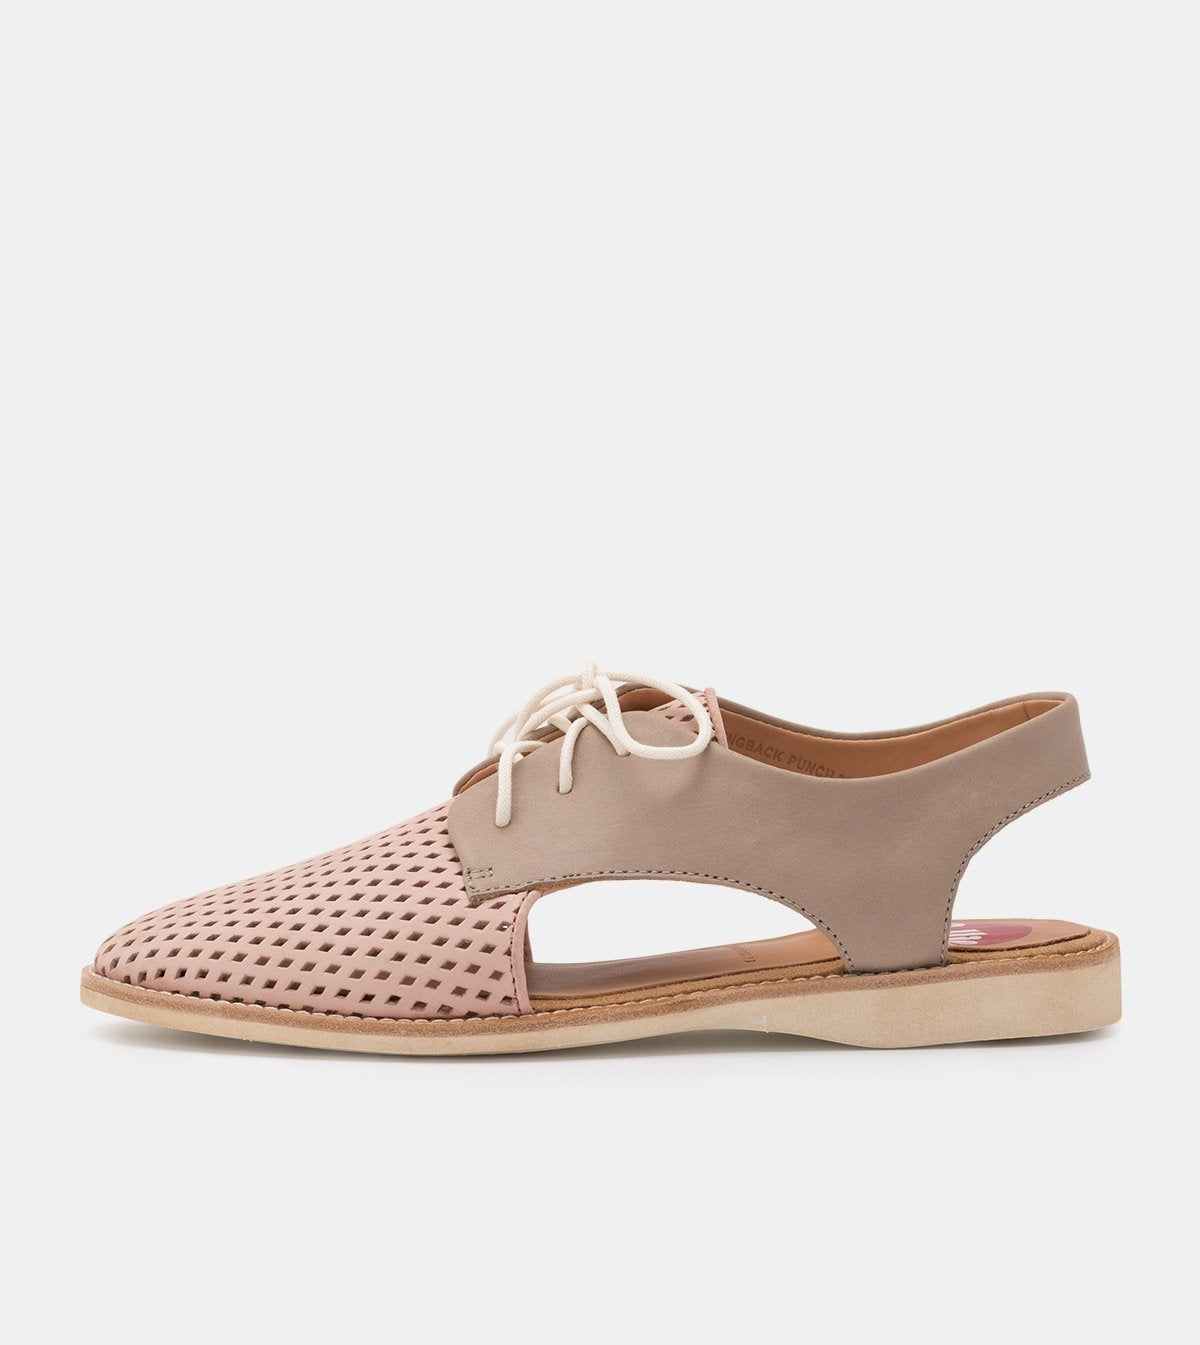 Rollie Slingback Punch Blush/Stone Shoes